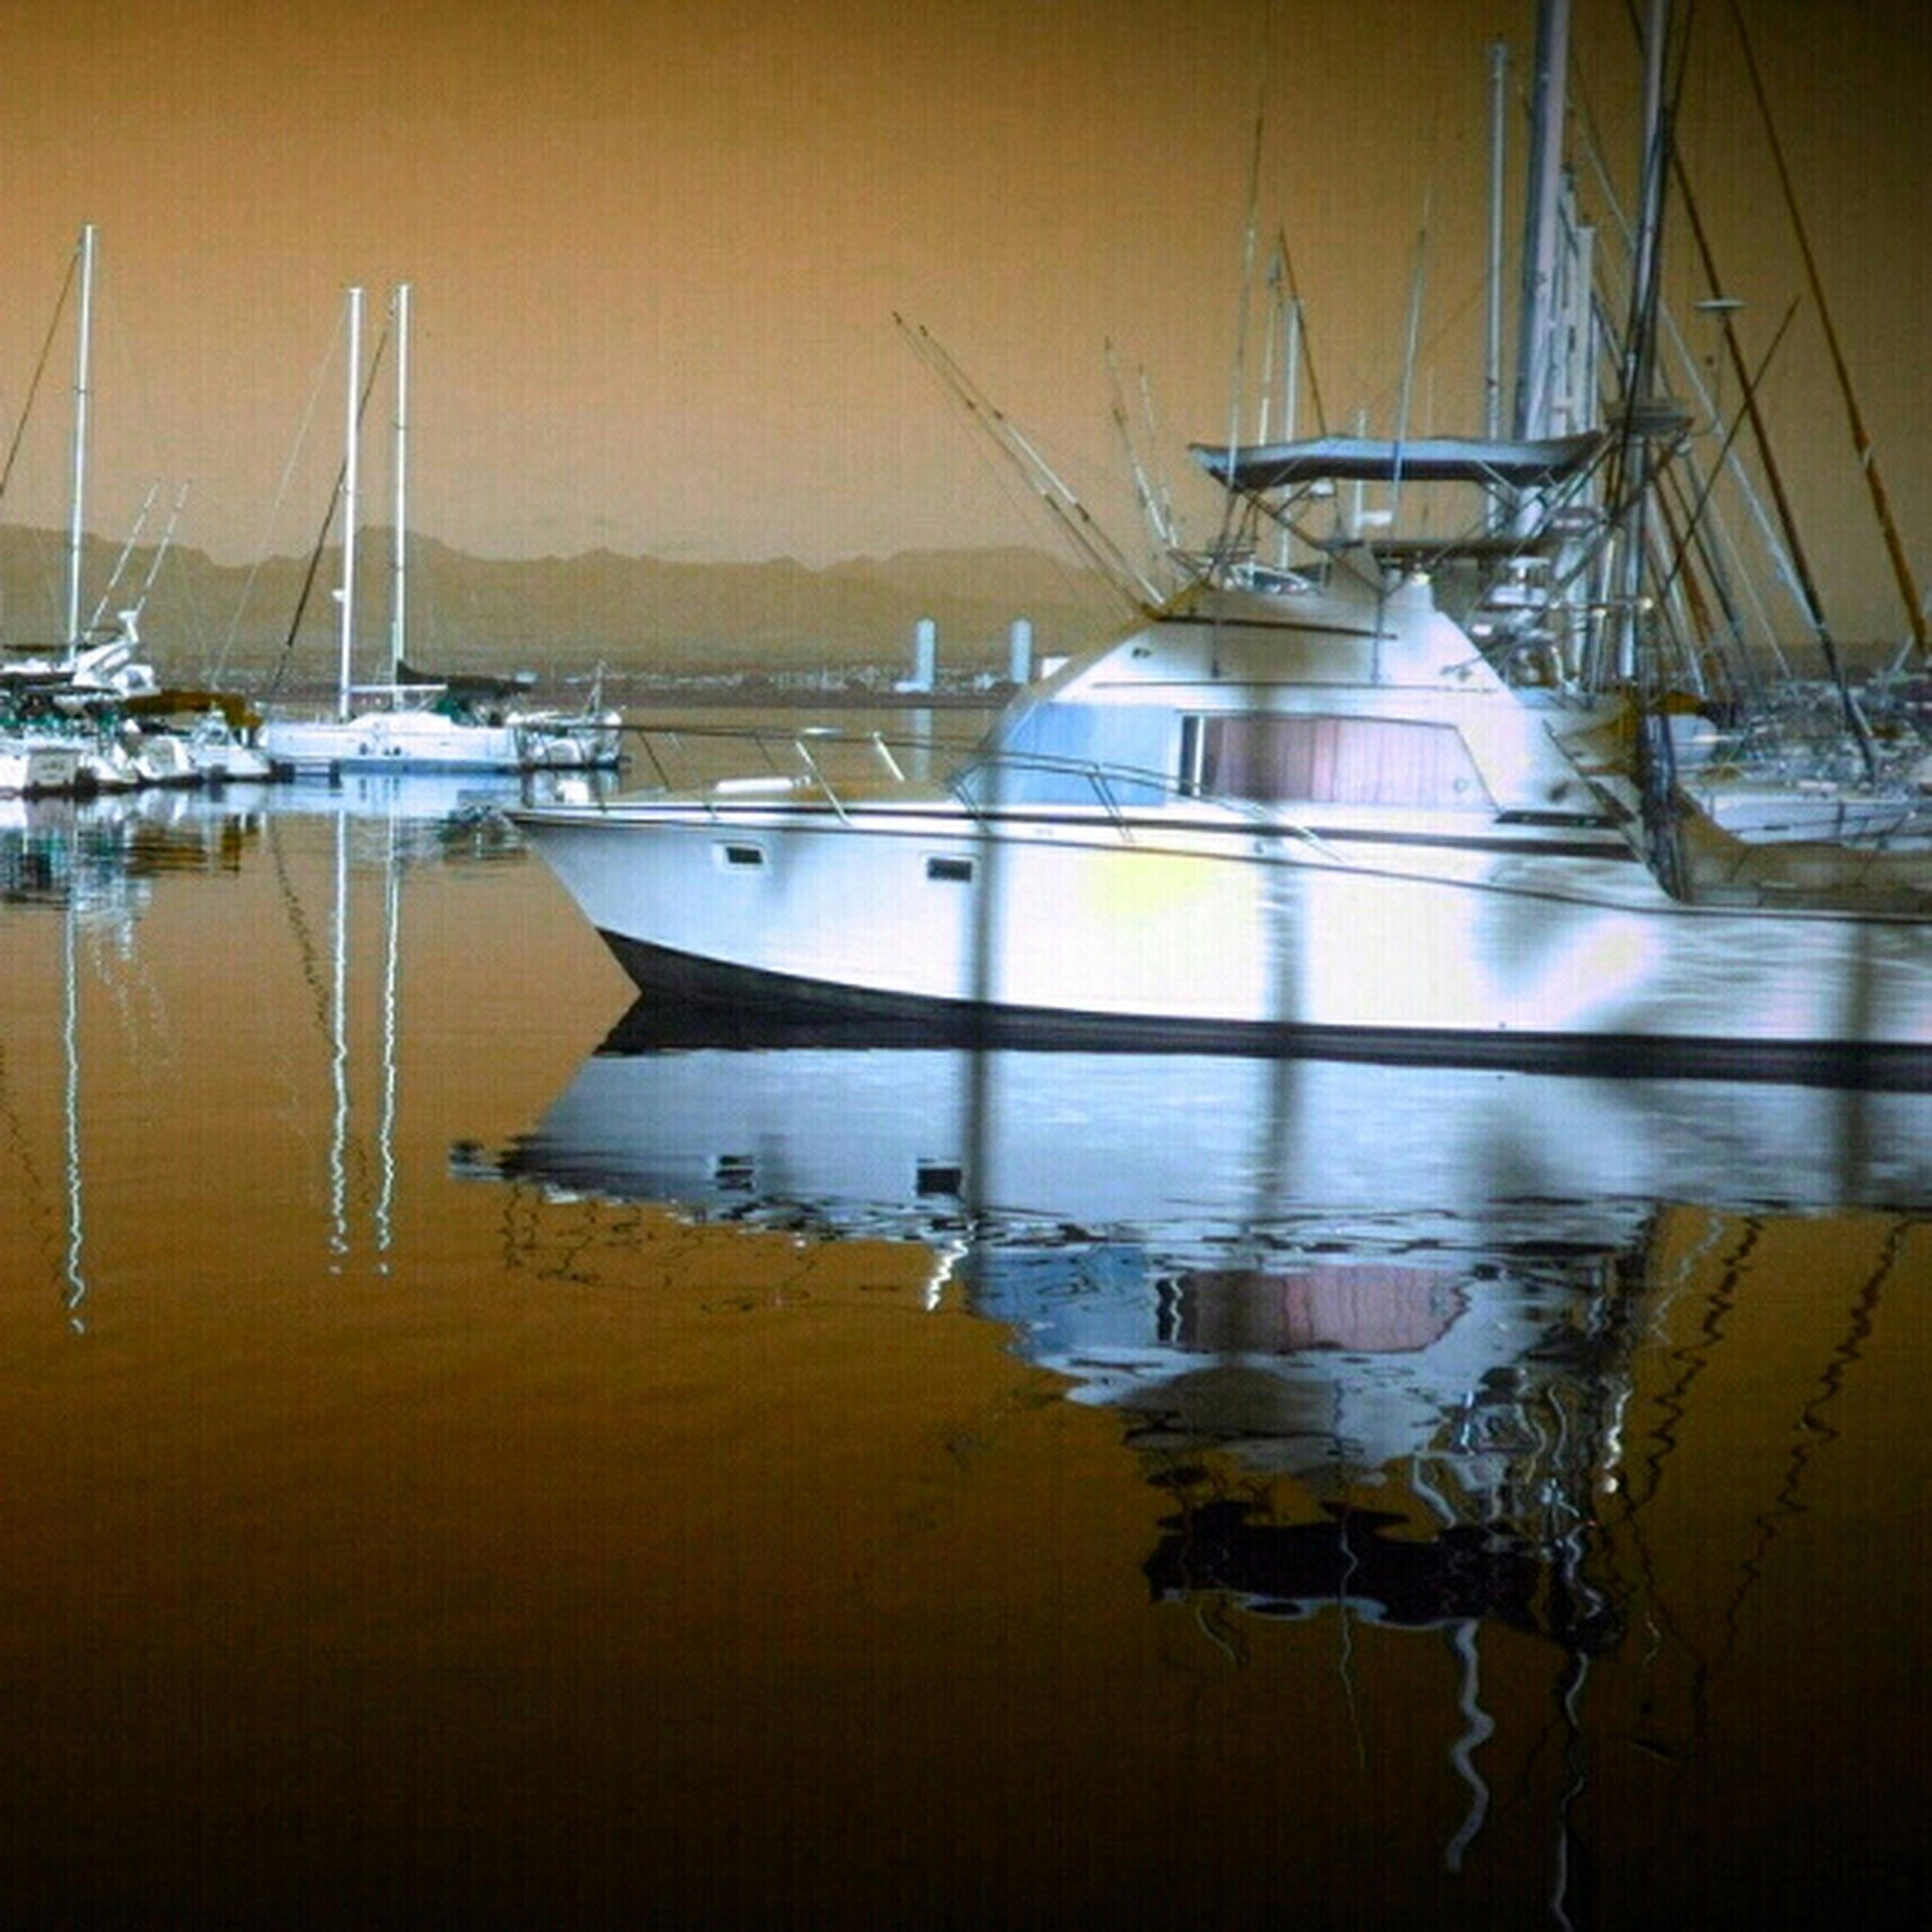 nautical vessel, transportation, moored, boat, mode of transport, water, mast, sea, harbor, reflection, sailboat, sunset, waterfront, lake, nature, no people, travel, outdoors, sky, yellow